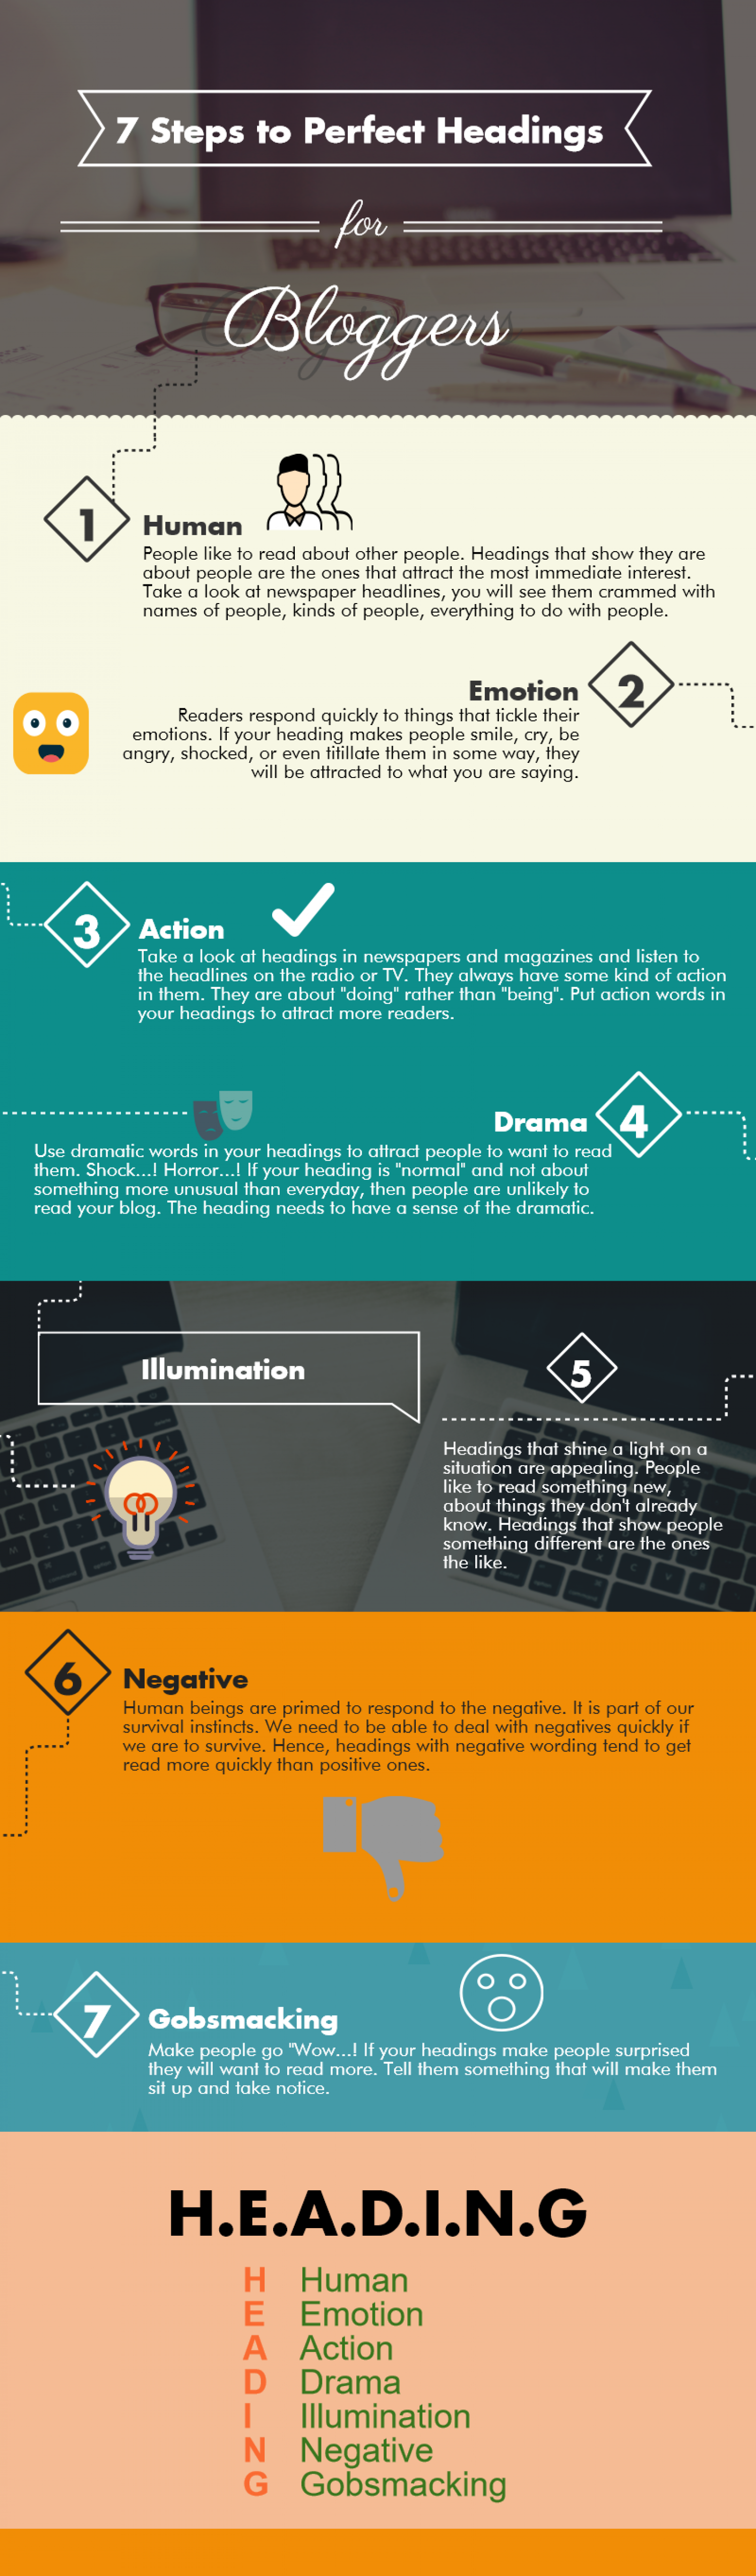 7 Steps to Perfect Blog Headings Infographic